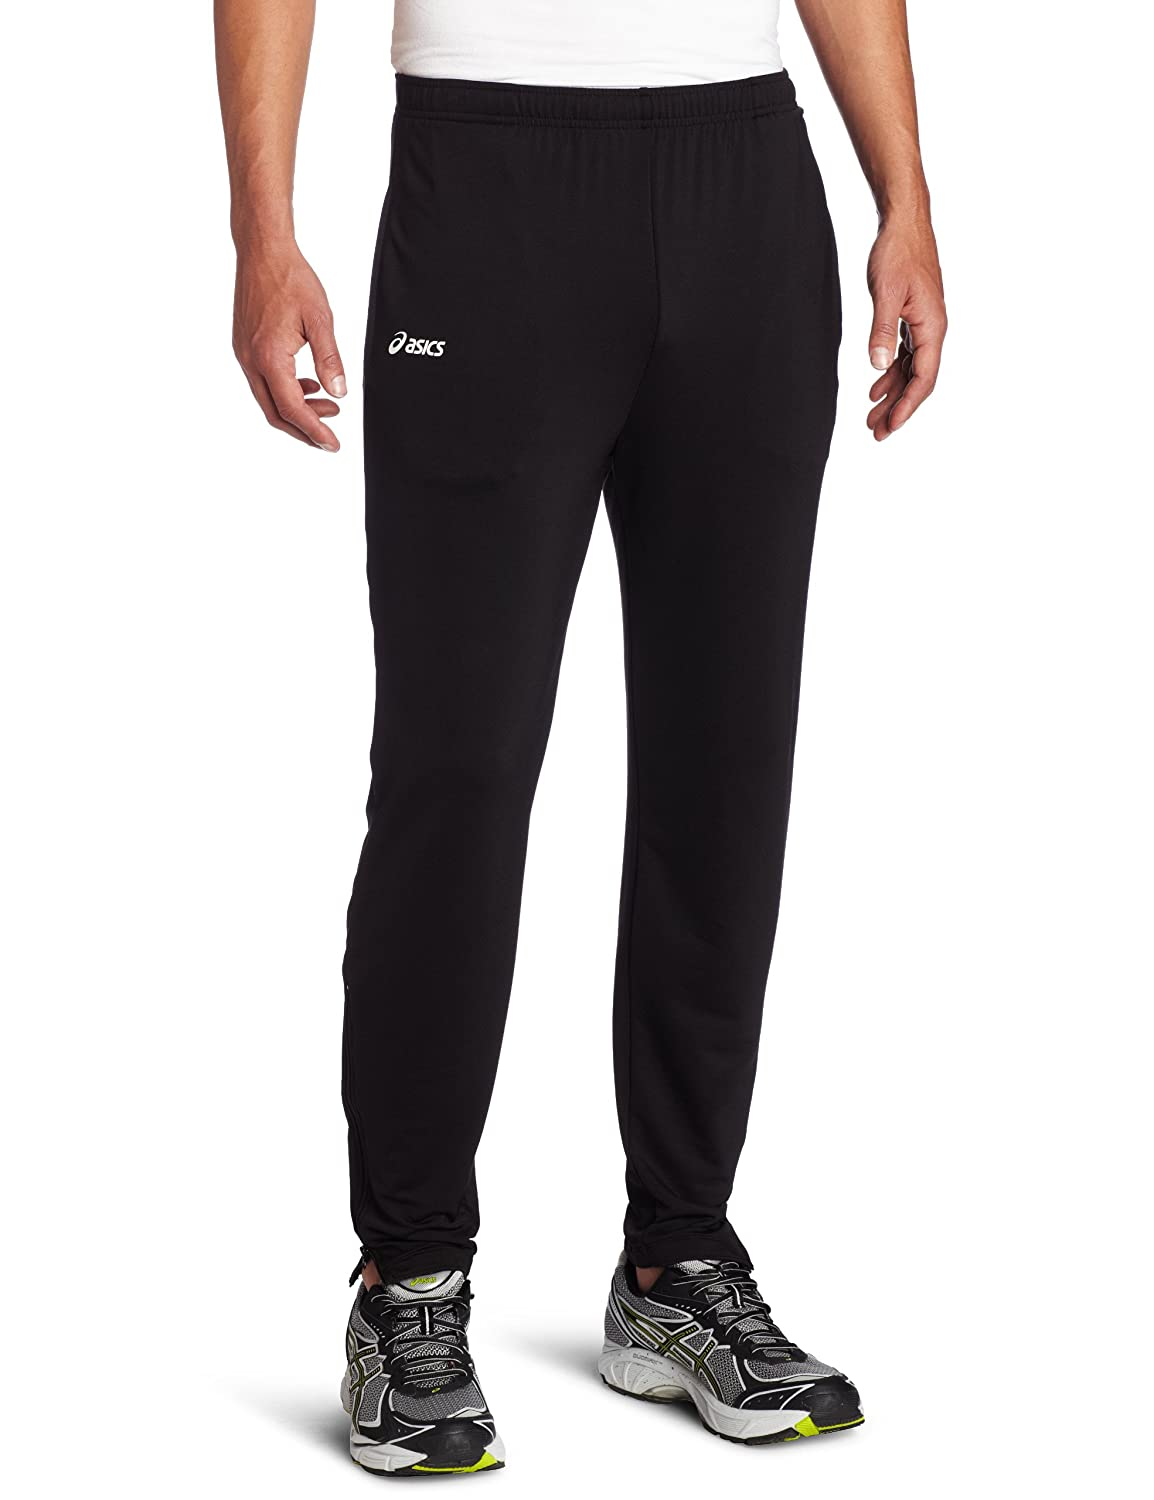 Shop Reebok's selection of men's workout and lifestyle pants online. Variety of styles and colors online. Free shipping on orders over $